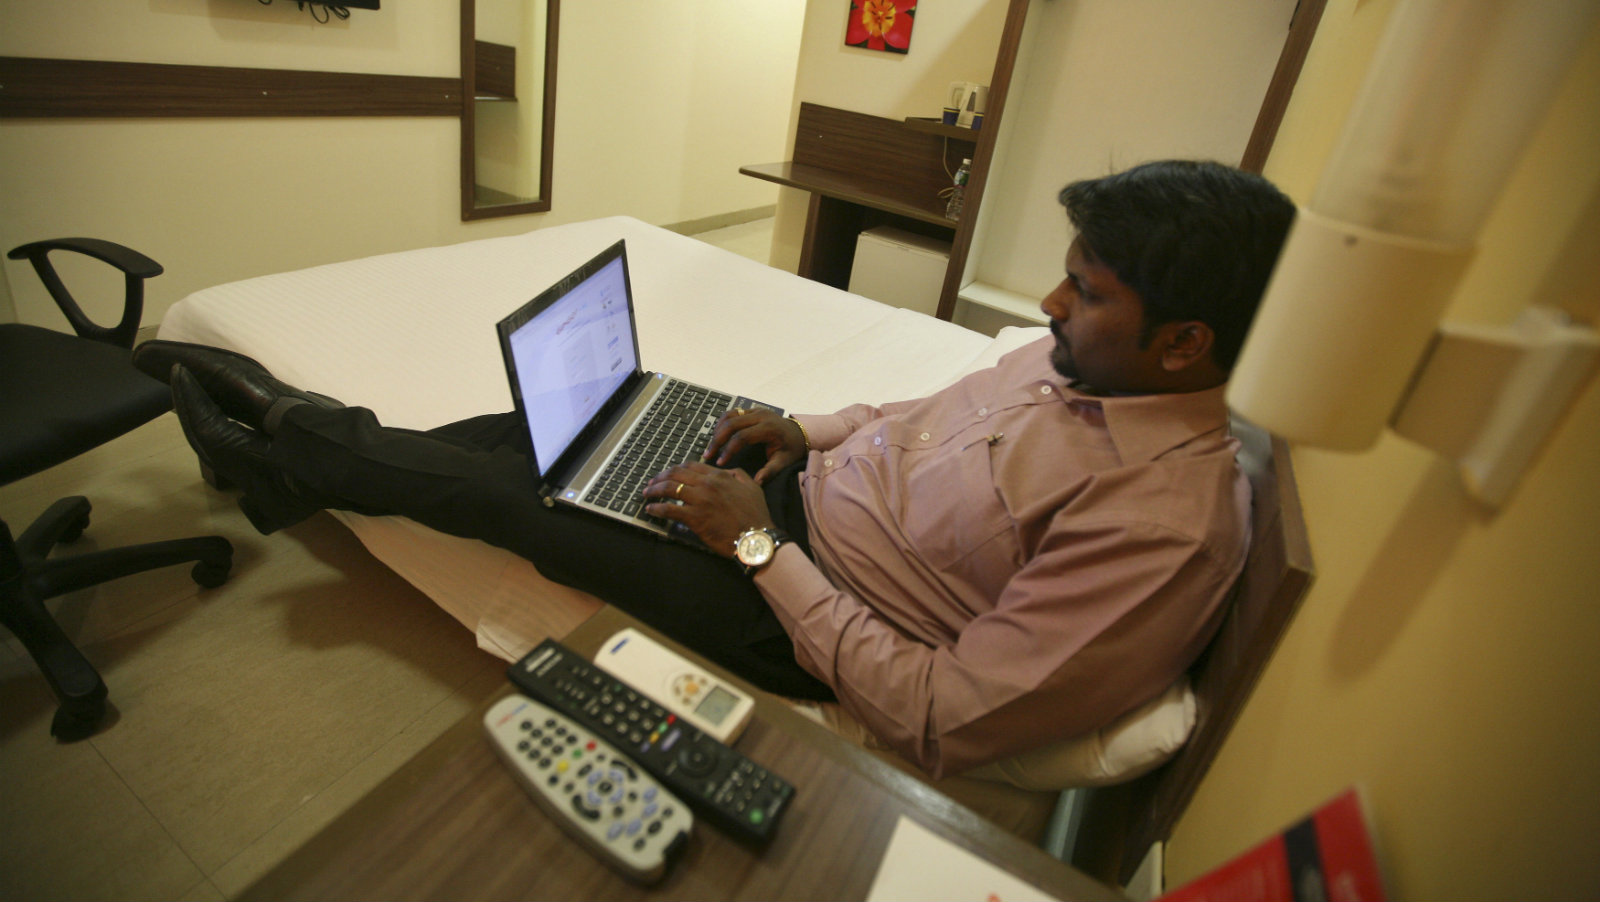 A guest works on a laptop inside his room at the Tata Group's Indian Hotels Co. Ginger chain in the western Indian city of Ahmedabad May 5, 2012. Rising spending by domestic travellers in India and Indonesia is prompting international hoteliers to build budget and mid-scale brands in the world's second and fourth largest populations. Ginger, run by the Tata Group's Indian Hotels Company, owner of Taj hotels, has 24 budget hotels in India with plans to grow to 75 hotels over the next four years. Picture taken May 5, 2012.